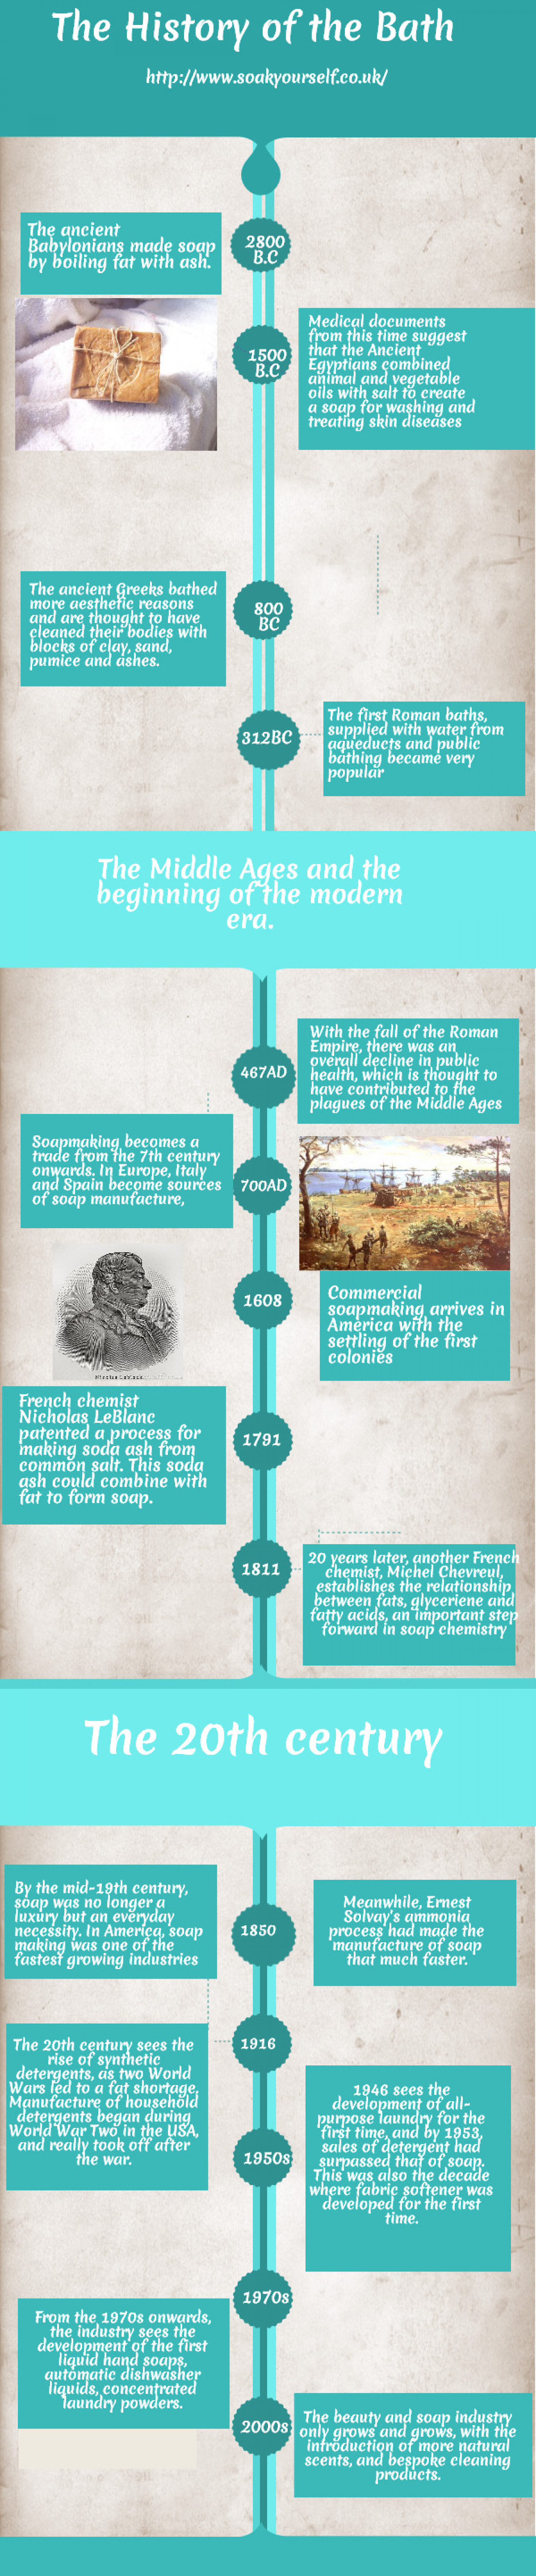 The History of the Bath Infographic